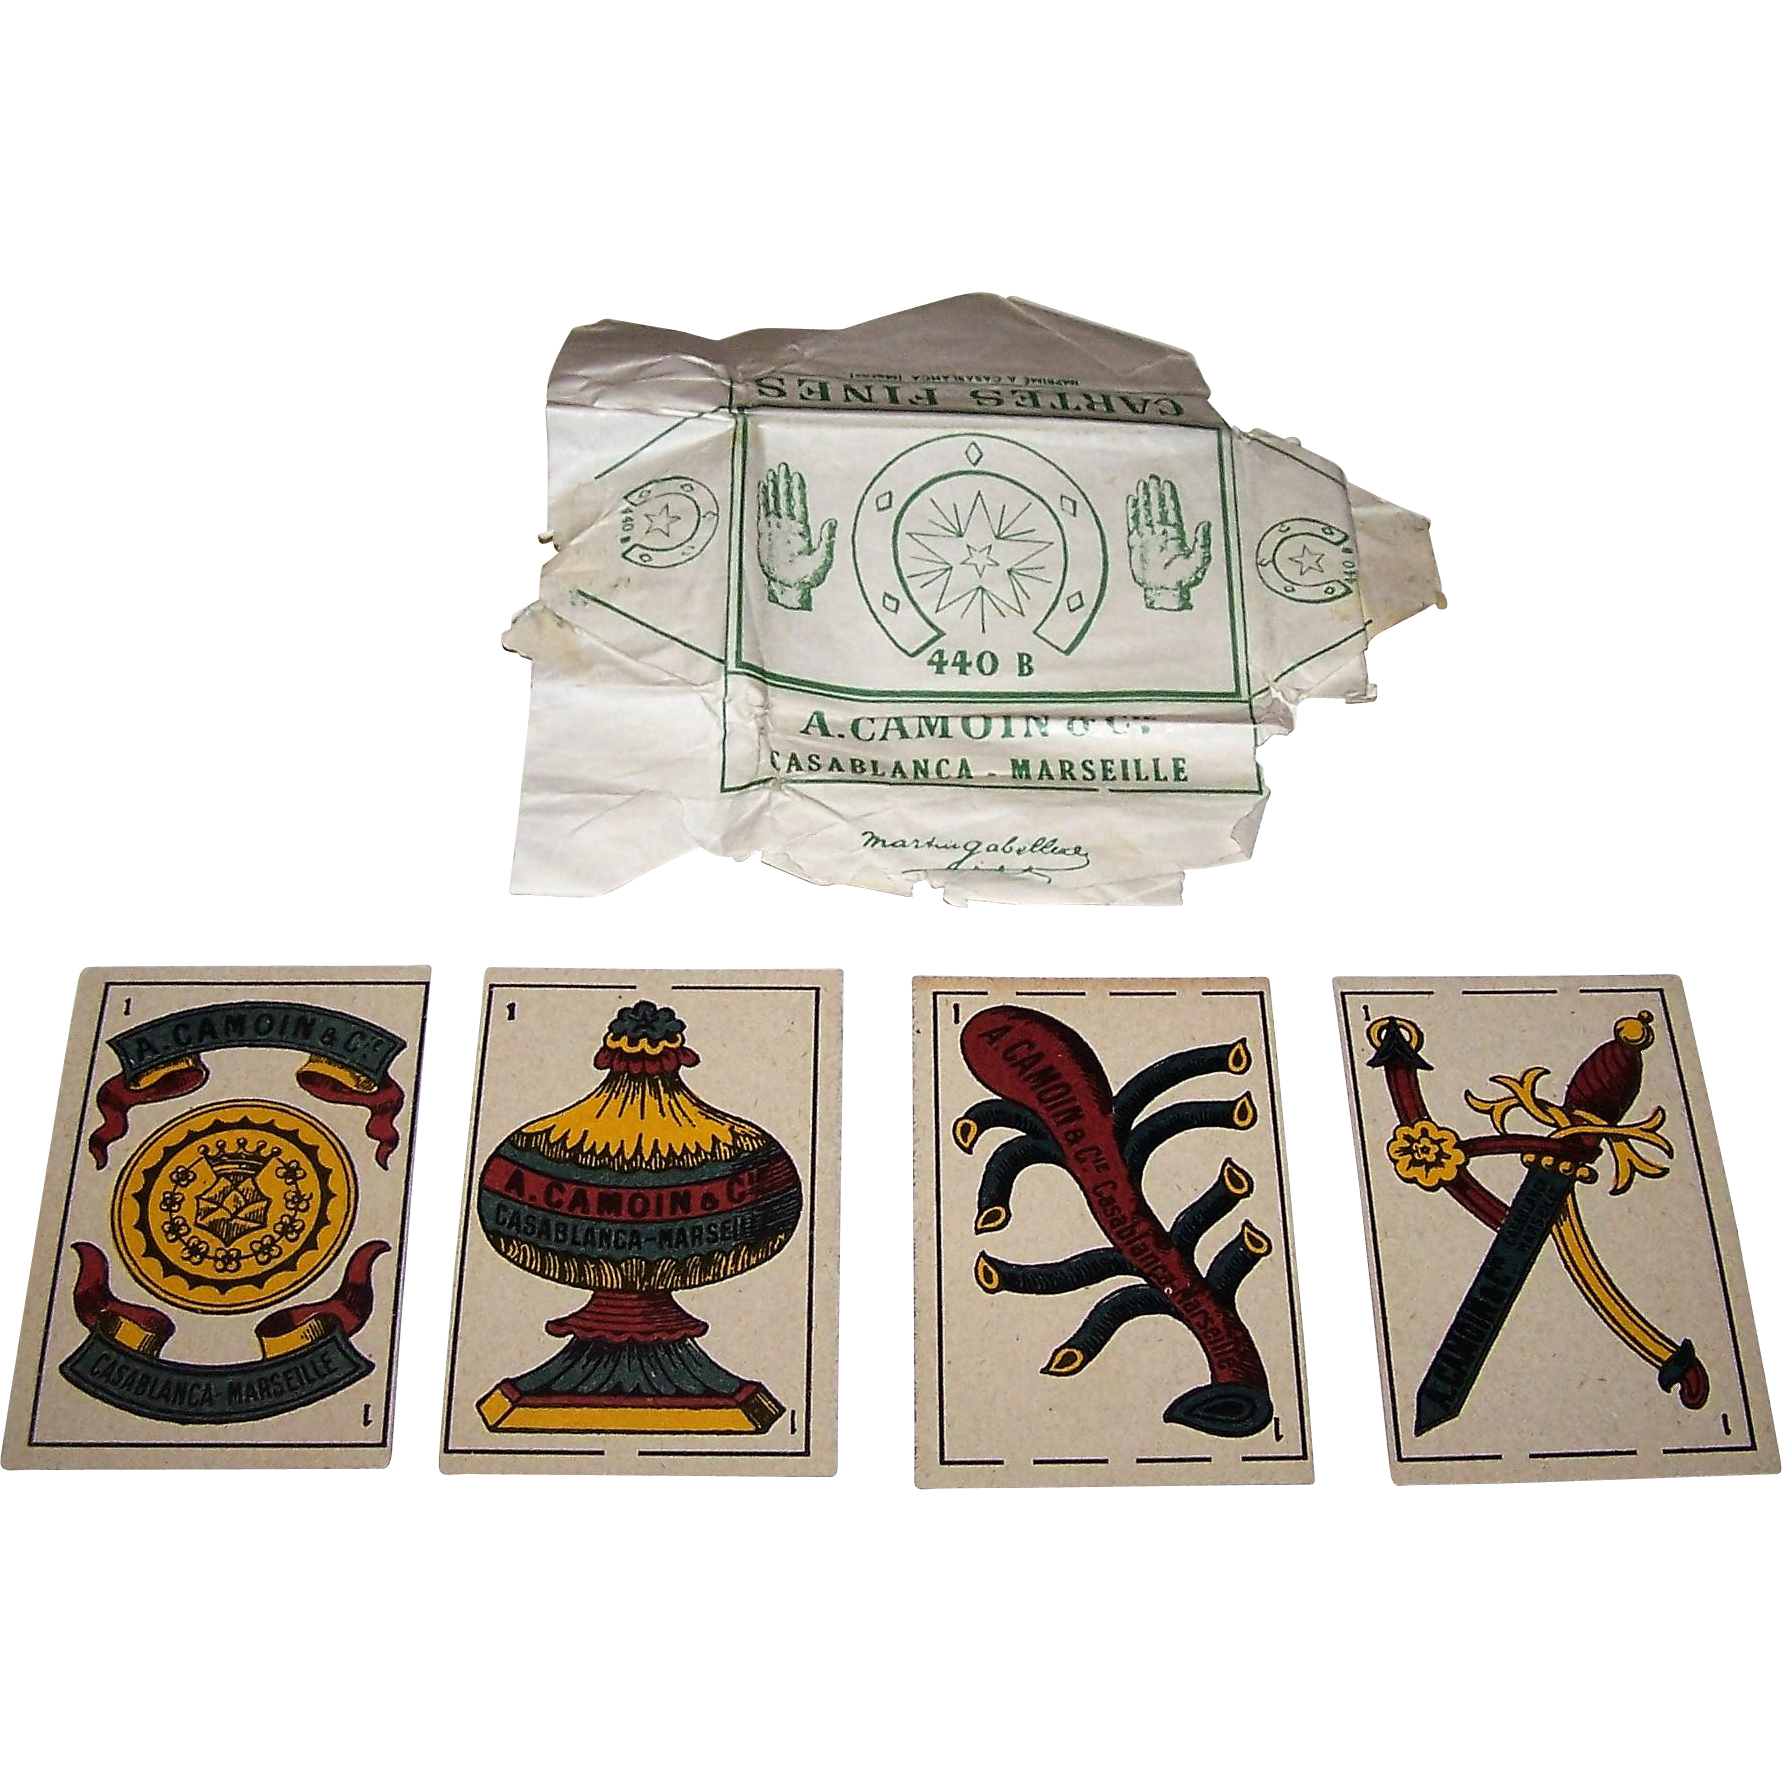 "Camoin & Cie Casblanca-Marseille ""Spanish Pattern No. 440B"" Playing Cards w/ Wrapper, c.1955"